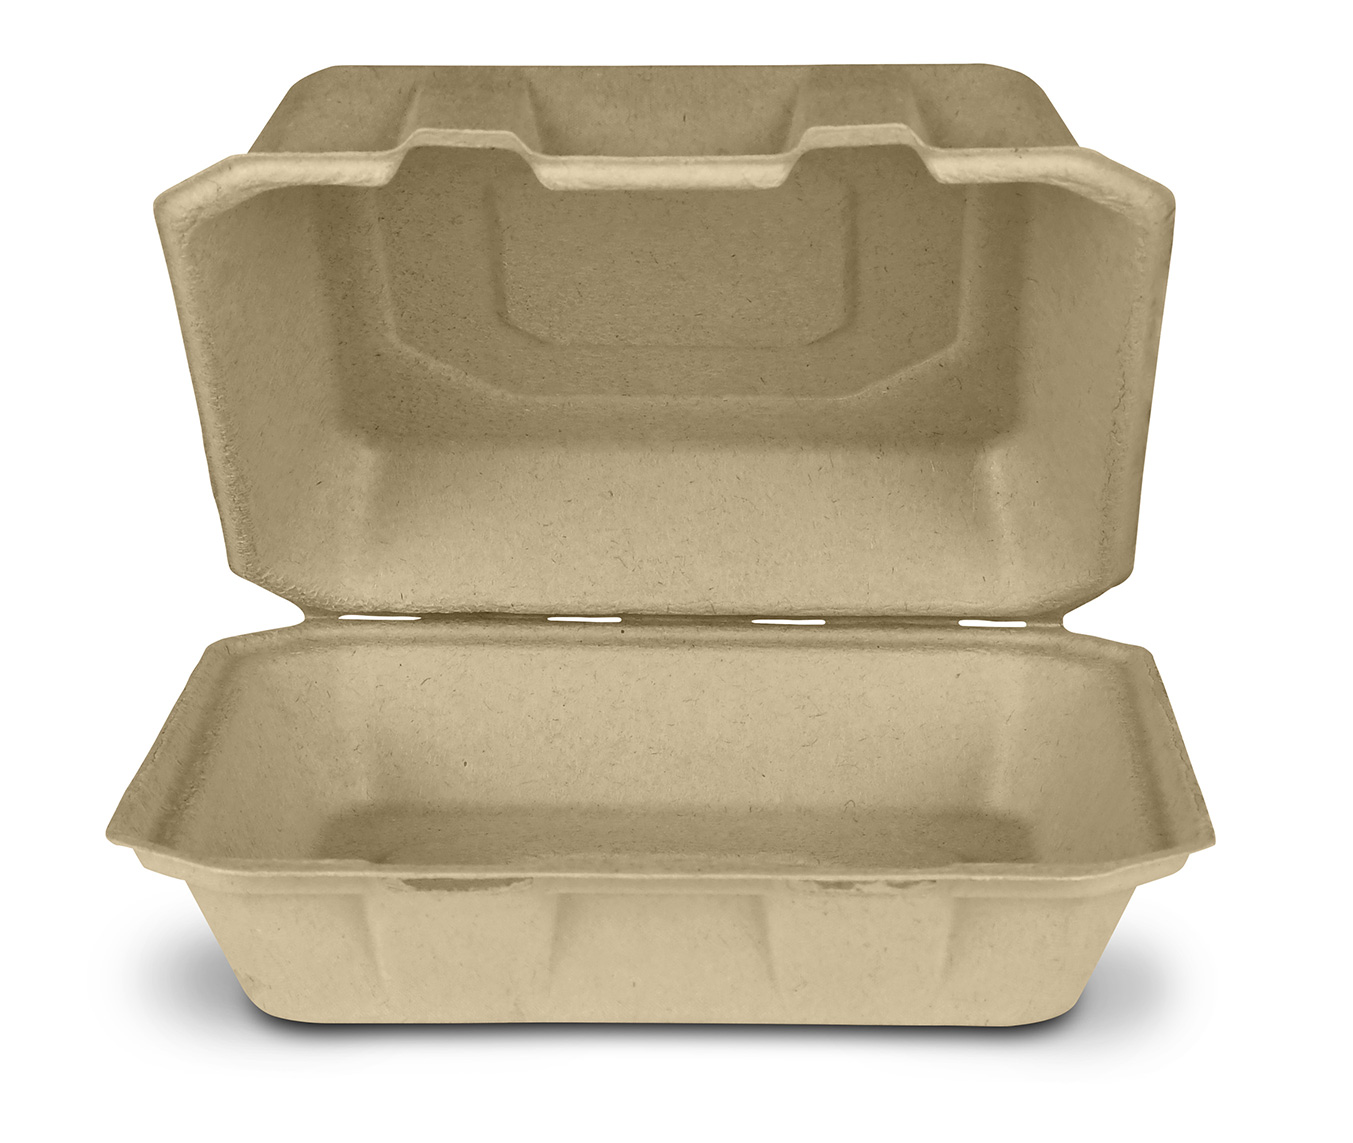 "Take-Out Container, Hinged, 8""x8"", Compostable, Kosher Certified, Chlorine-free Natural Sugarcane, Kraft, 200/cs, Made in USA"